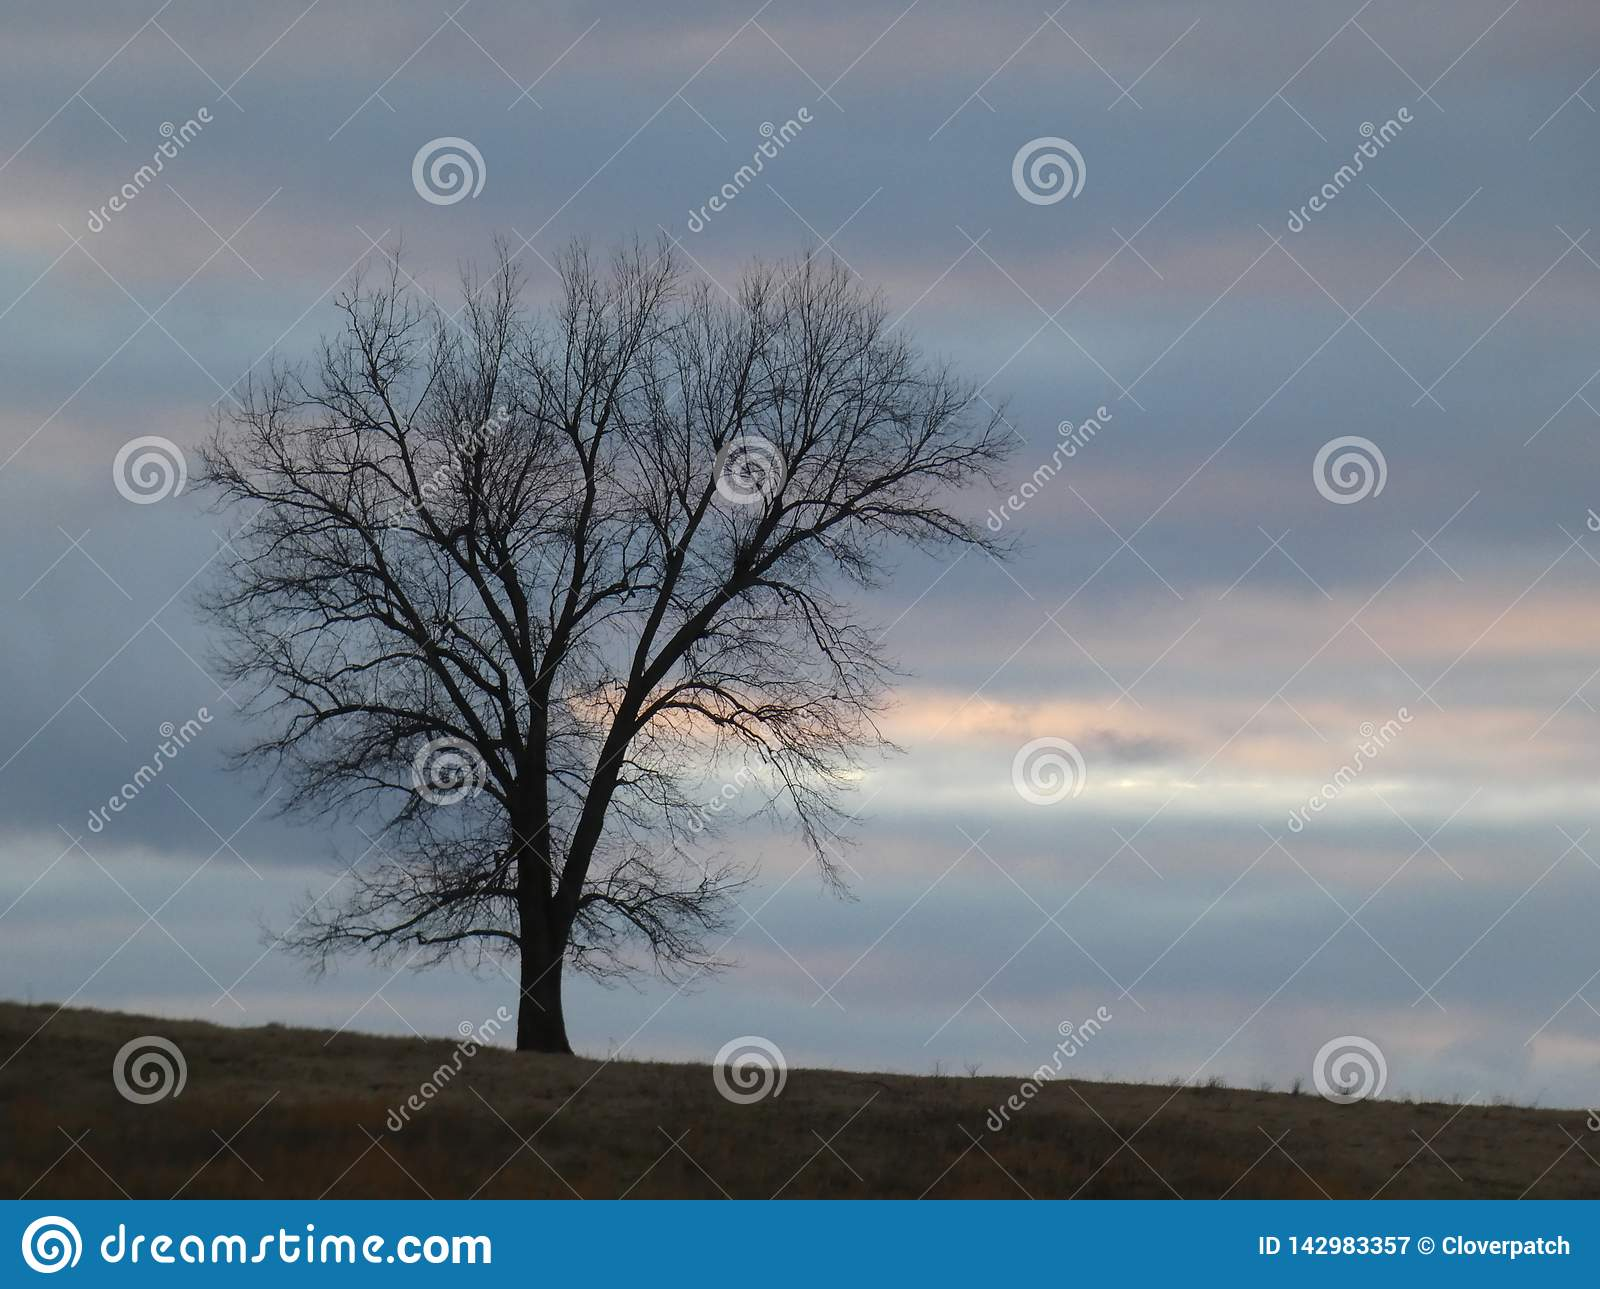 Single Tree with Bare Branches Silhouette on Hilltop Against Cloudy Watercolor Dreamy Sky